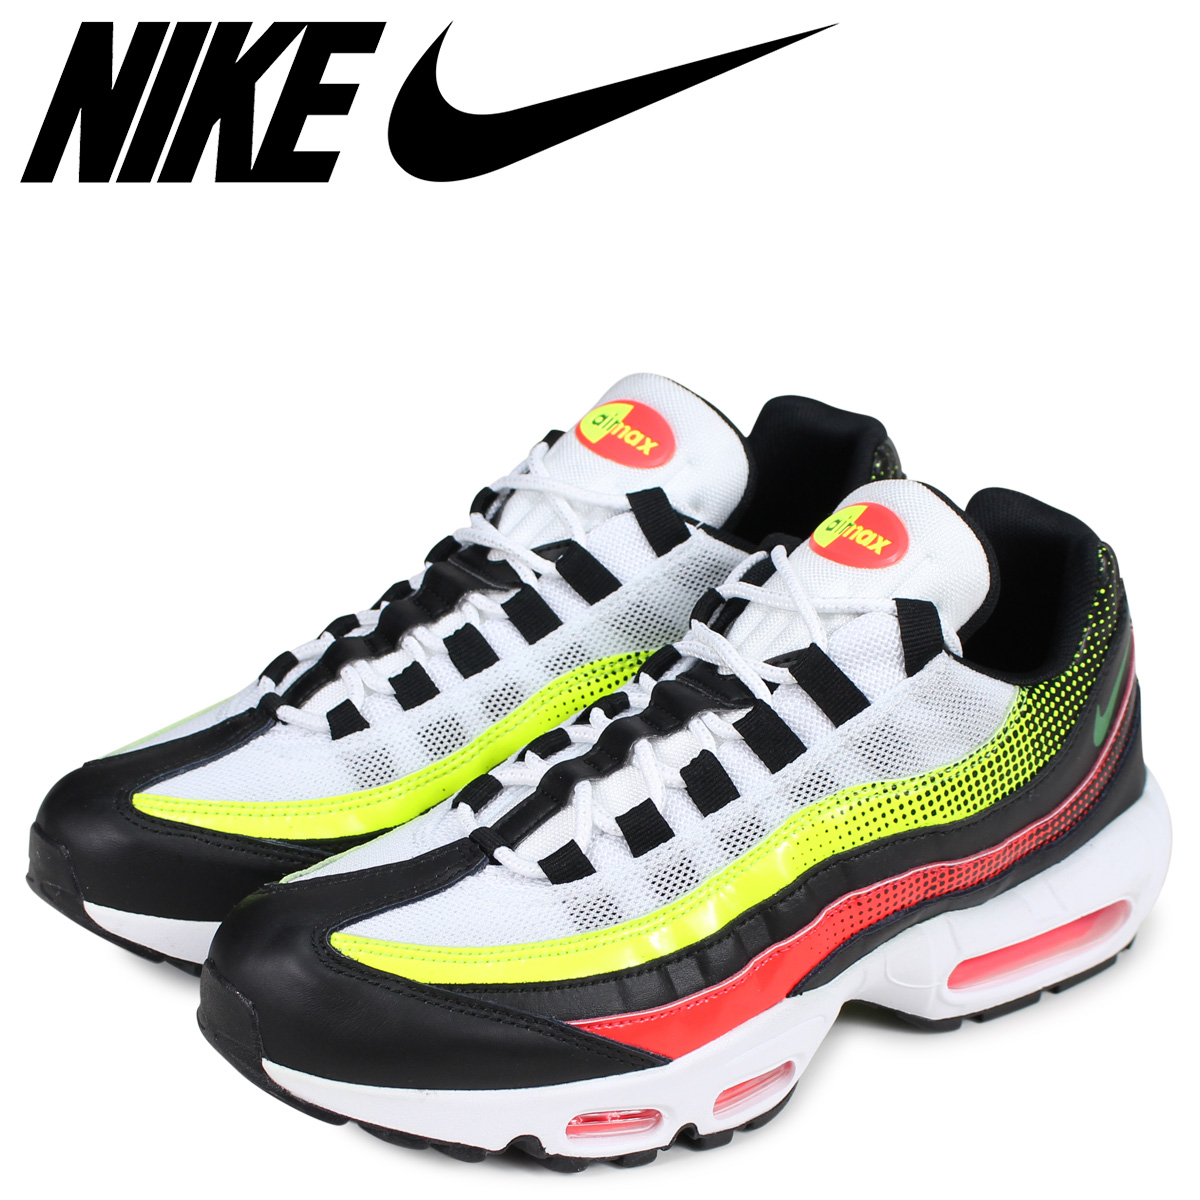 sale retailer 5d3ad 01bab NIKE Kie Ney AMAX 95 sneakers men AIR MAX 95 SE black black AJ2018-004   load planned Shinnyu load in reservation product 4 19 containing